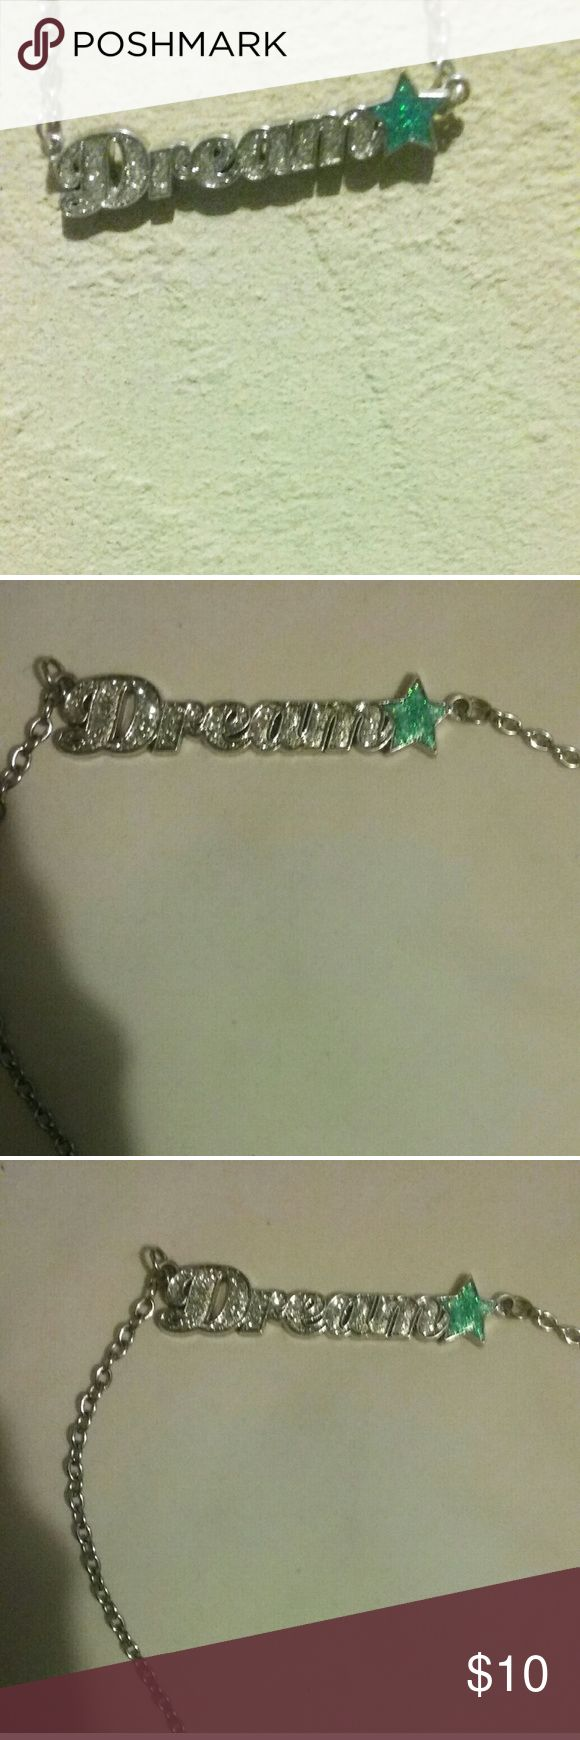 Turquoise and silver necklace Very cute silver necklace that spells dream with a turquoise star. The letters have sparkles and the star has a glitter look, very shiny type necklace. No flaws and intact, perfect and neat condition!   Goes with almost any outfit and on any occasion! The best wear for summer and or on a sunny day. Rue21 Jewelry Necklaces